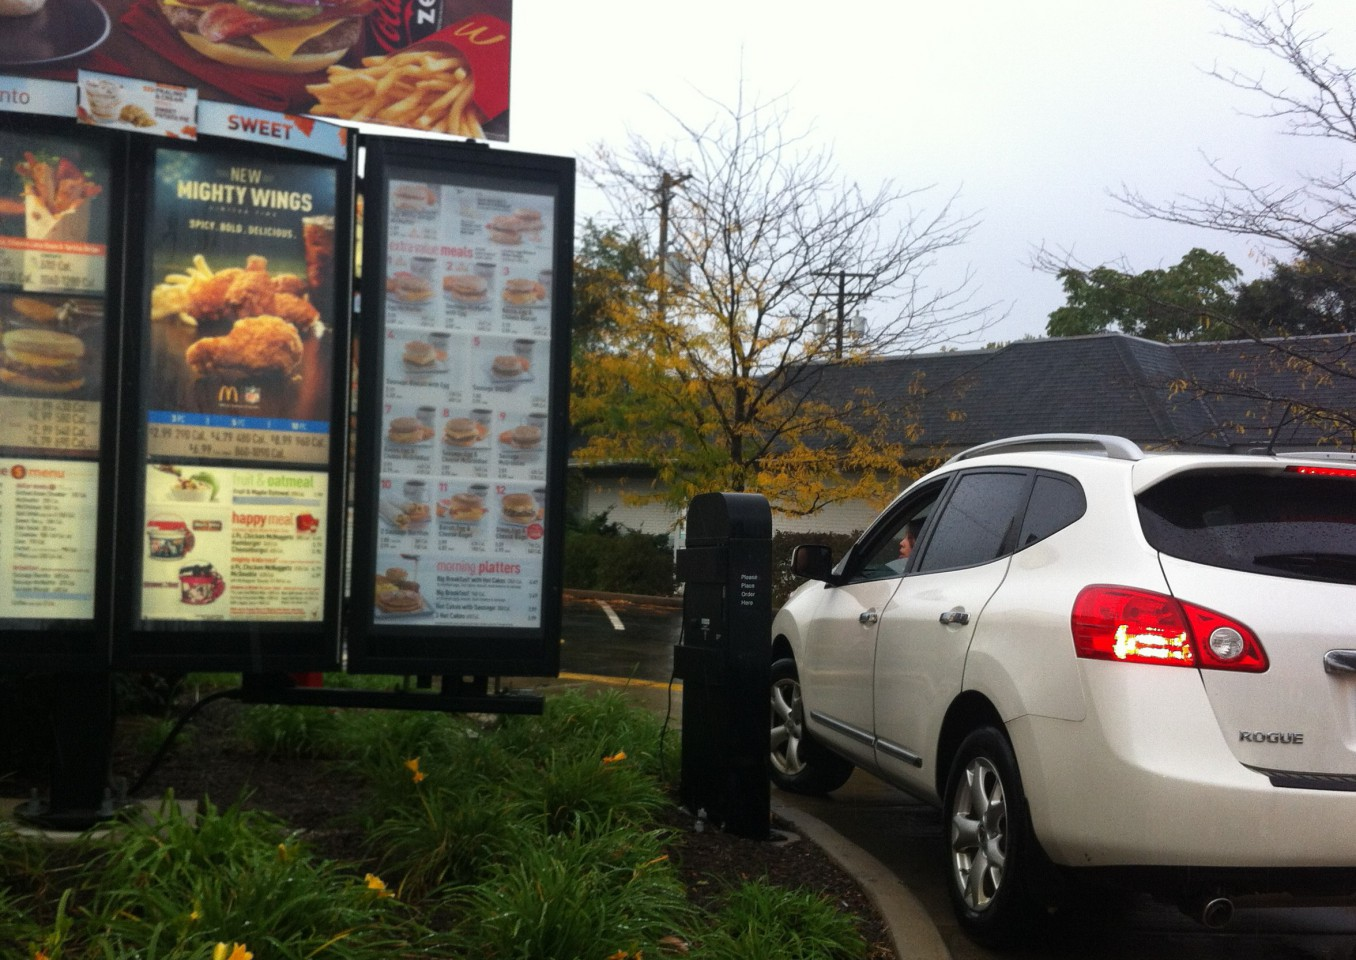 Just Go! The 10 Essential Rules of Drive-Thru Etiquette